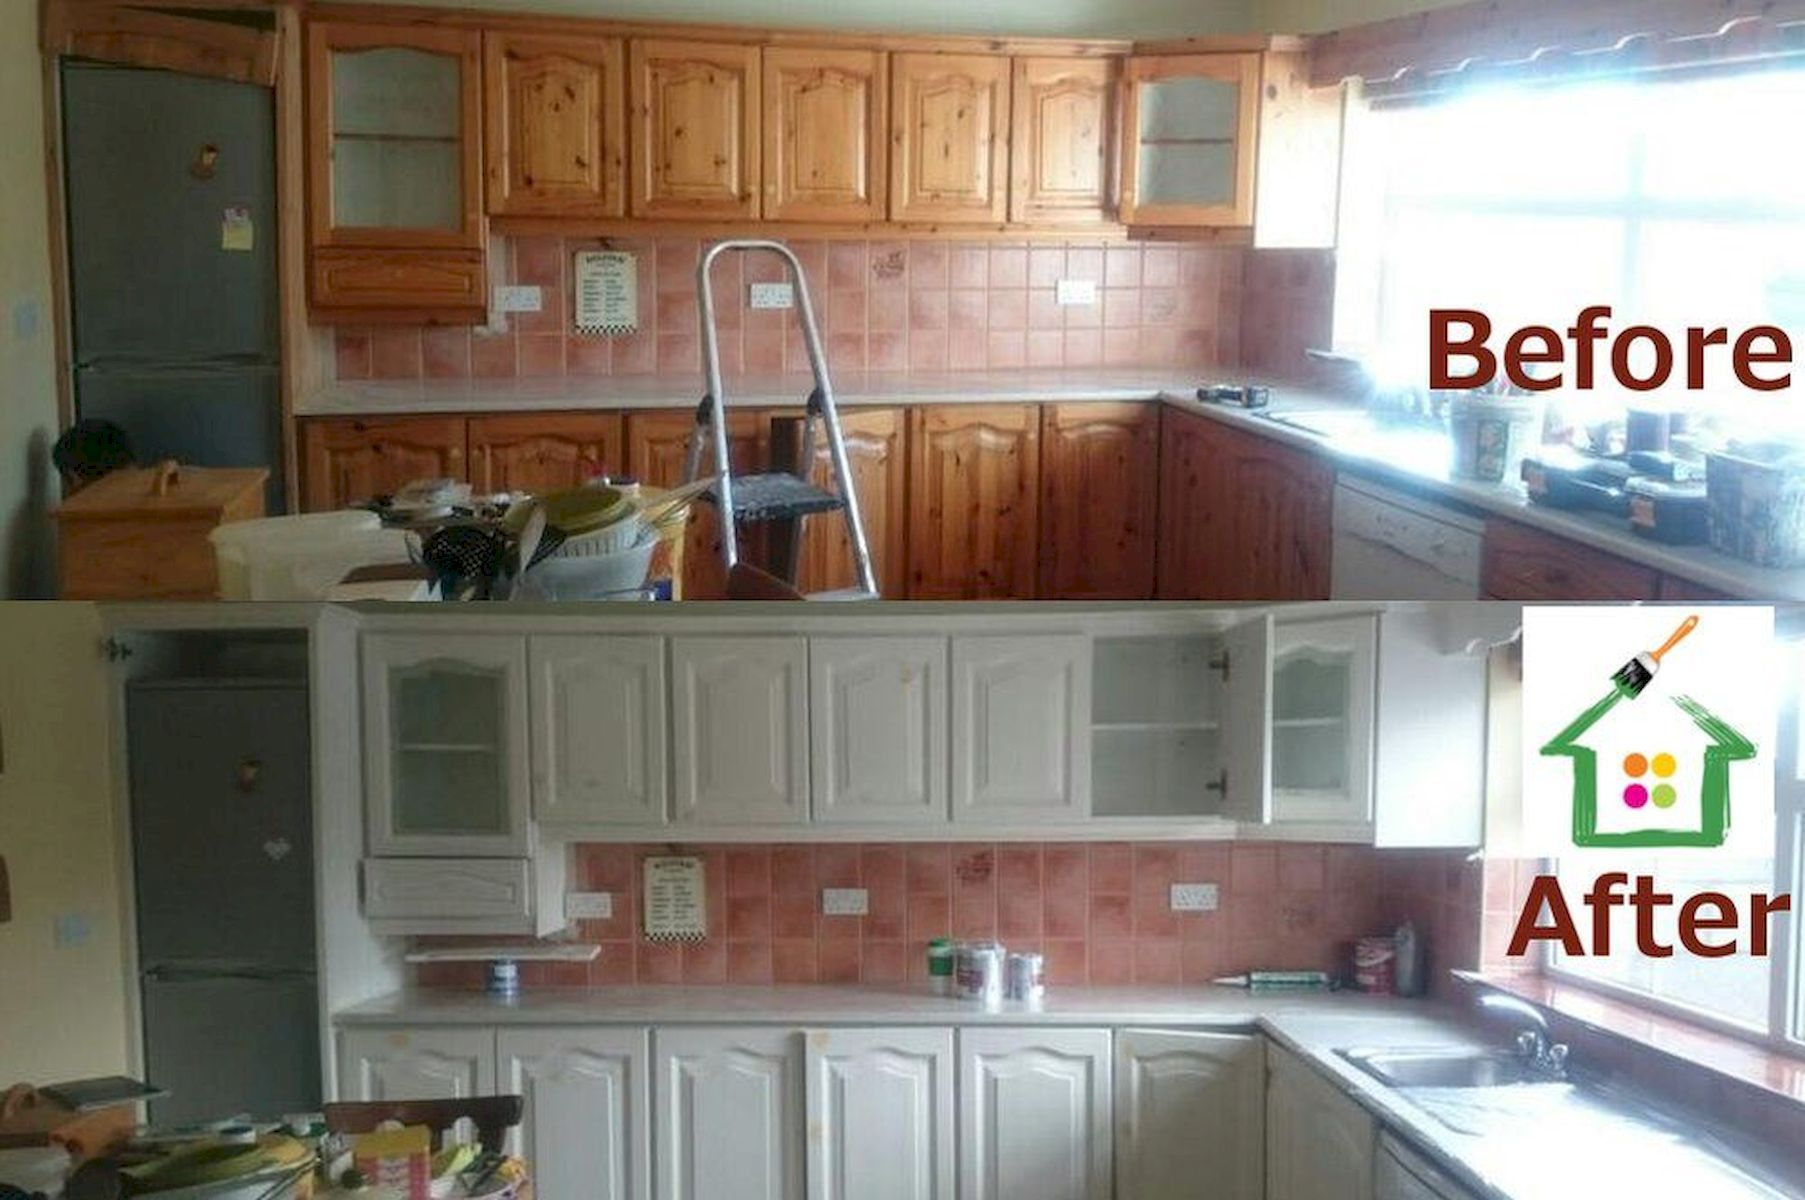 Before & After Painted Kitchen Idea home design